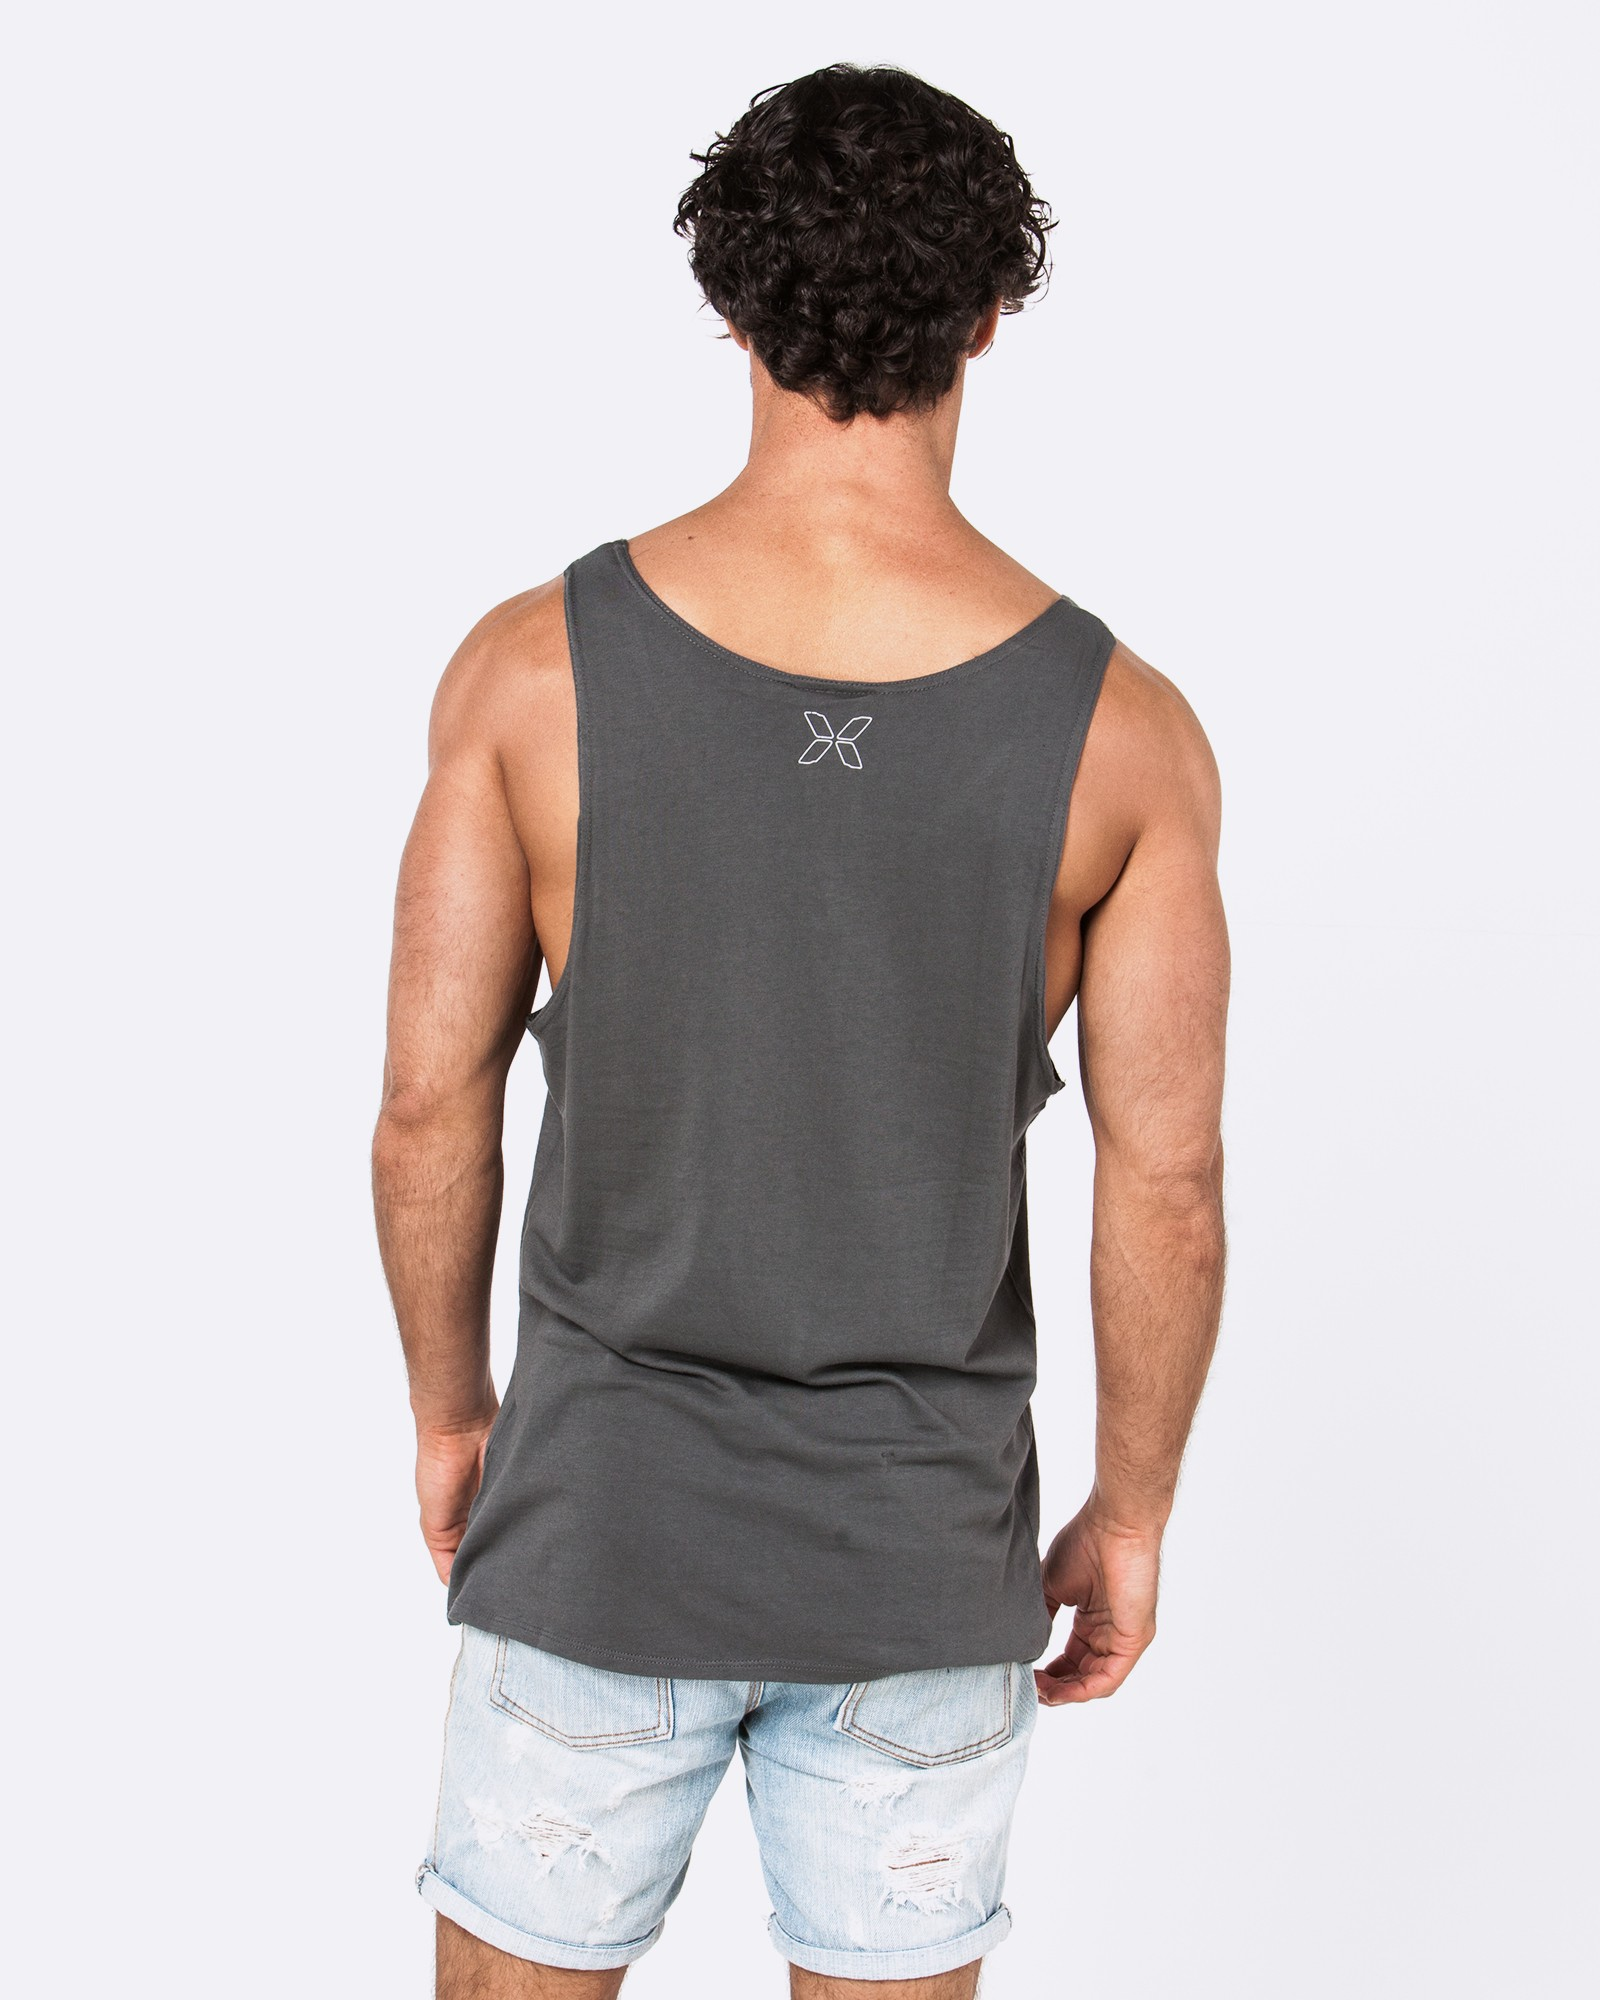 HEAVEN SENT DARK GREY SINGLET